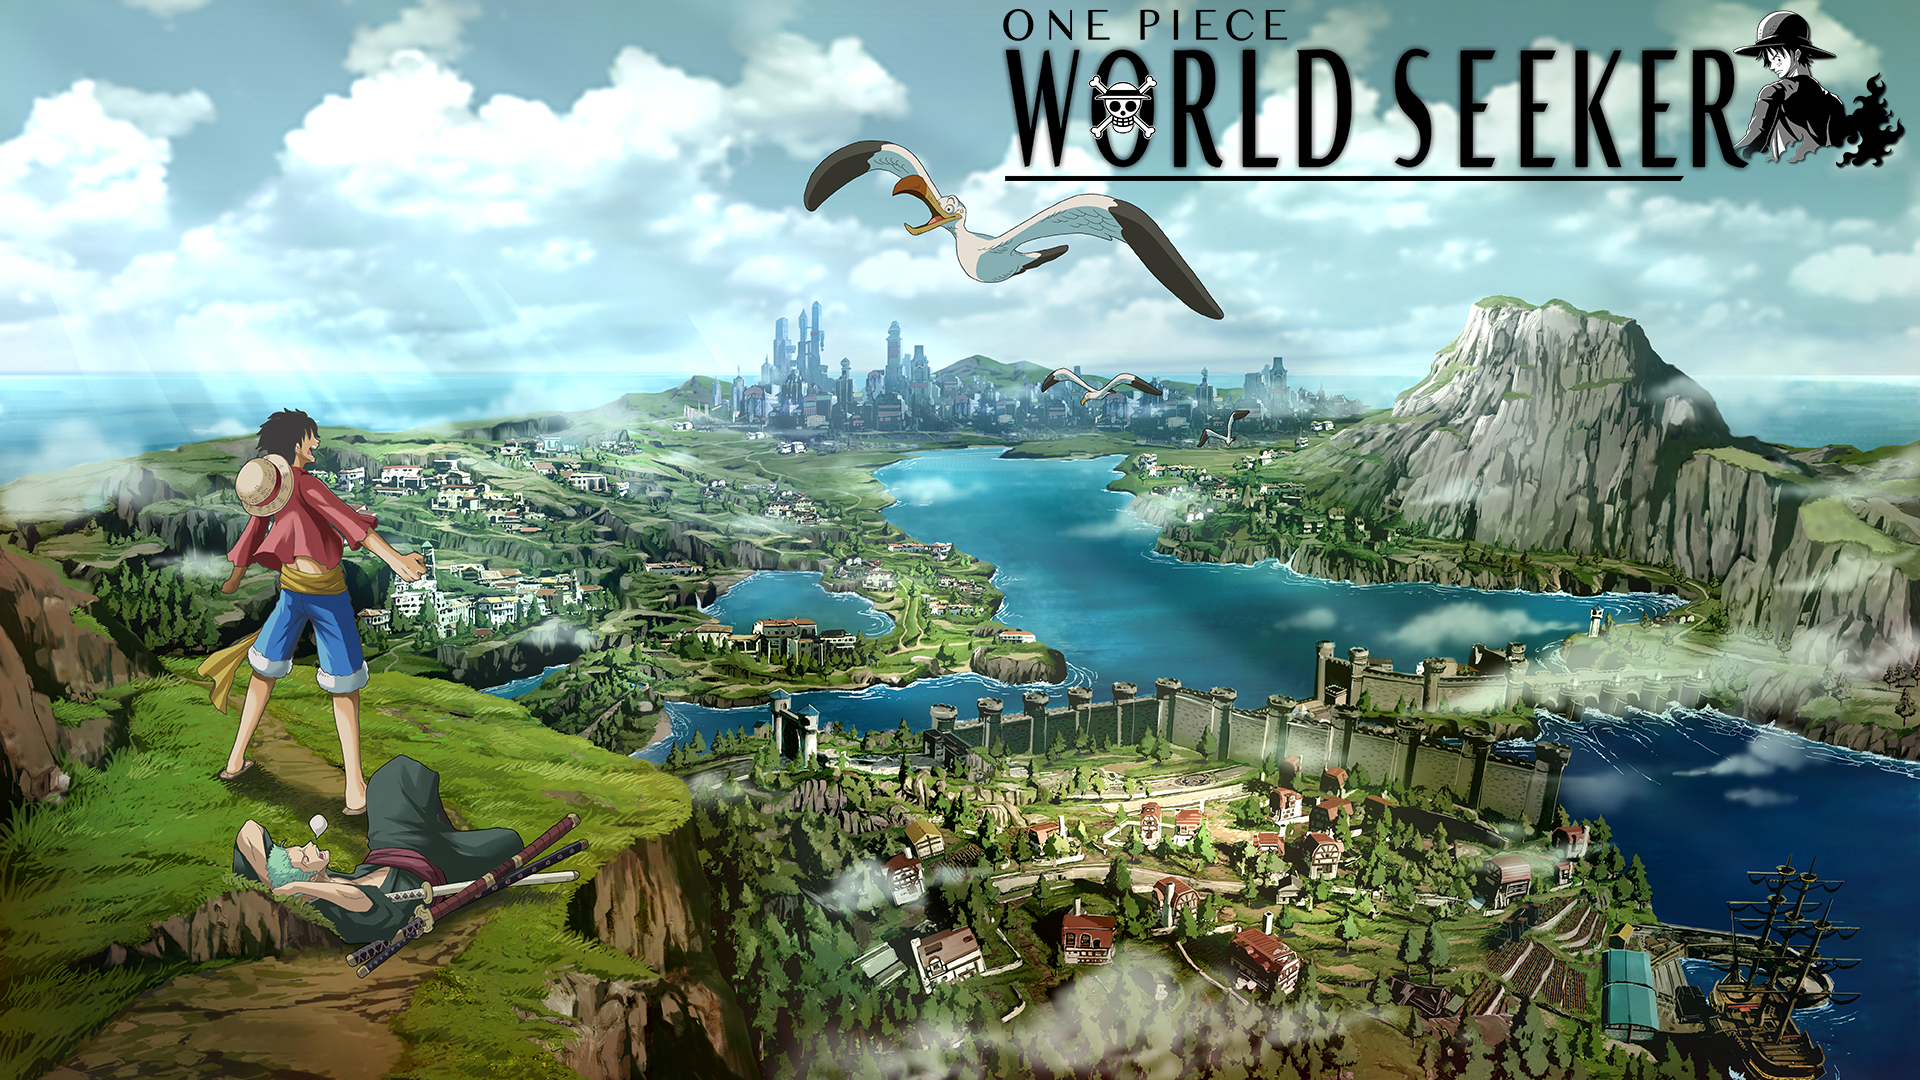 one piece world seeker video game hd wallpaper 67282